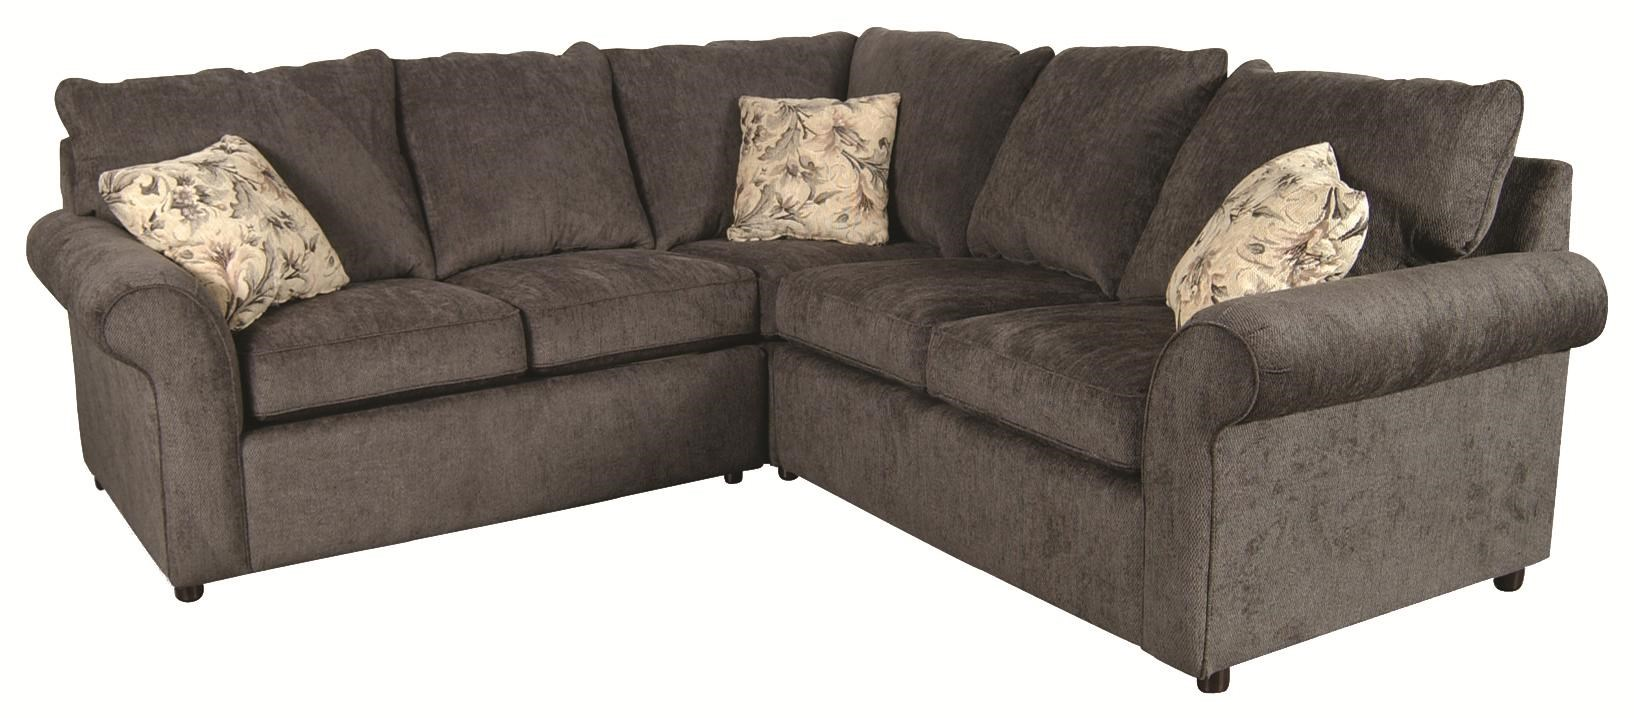 ... England The M Series4 5 Seat Corner Sectional Sofa ...